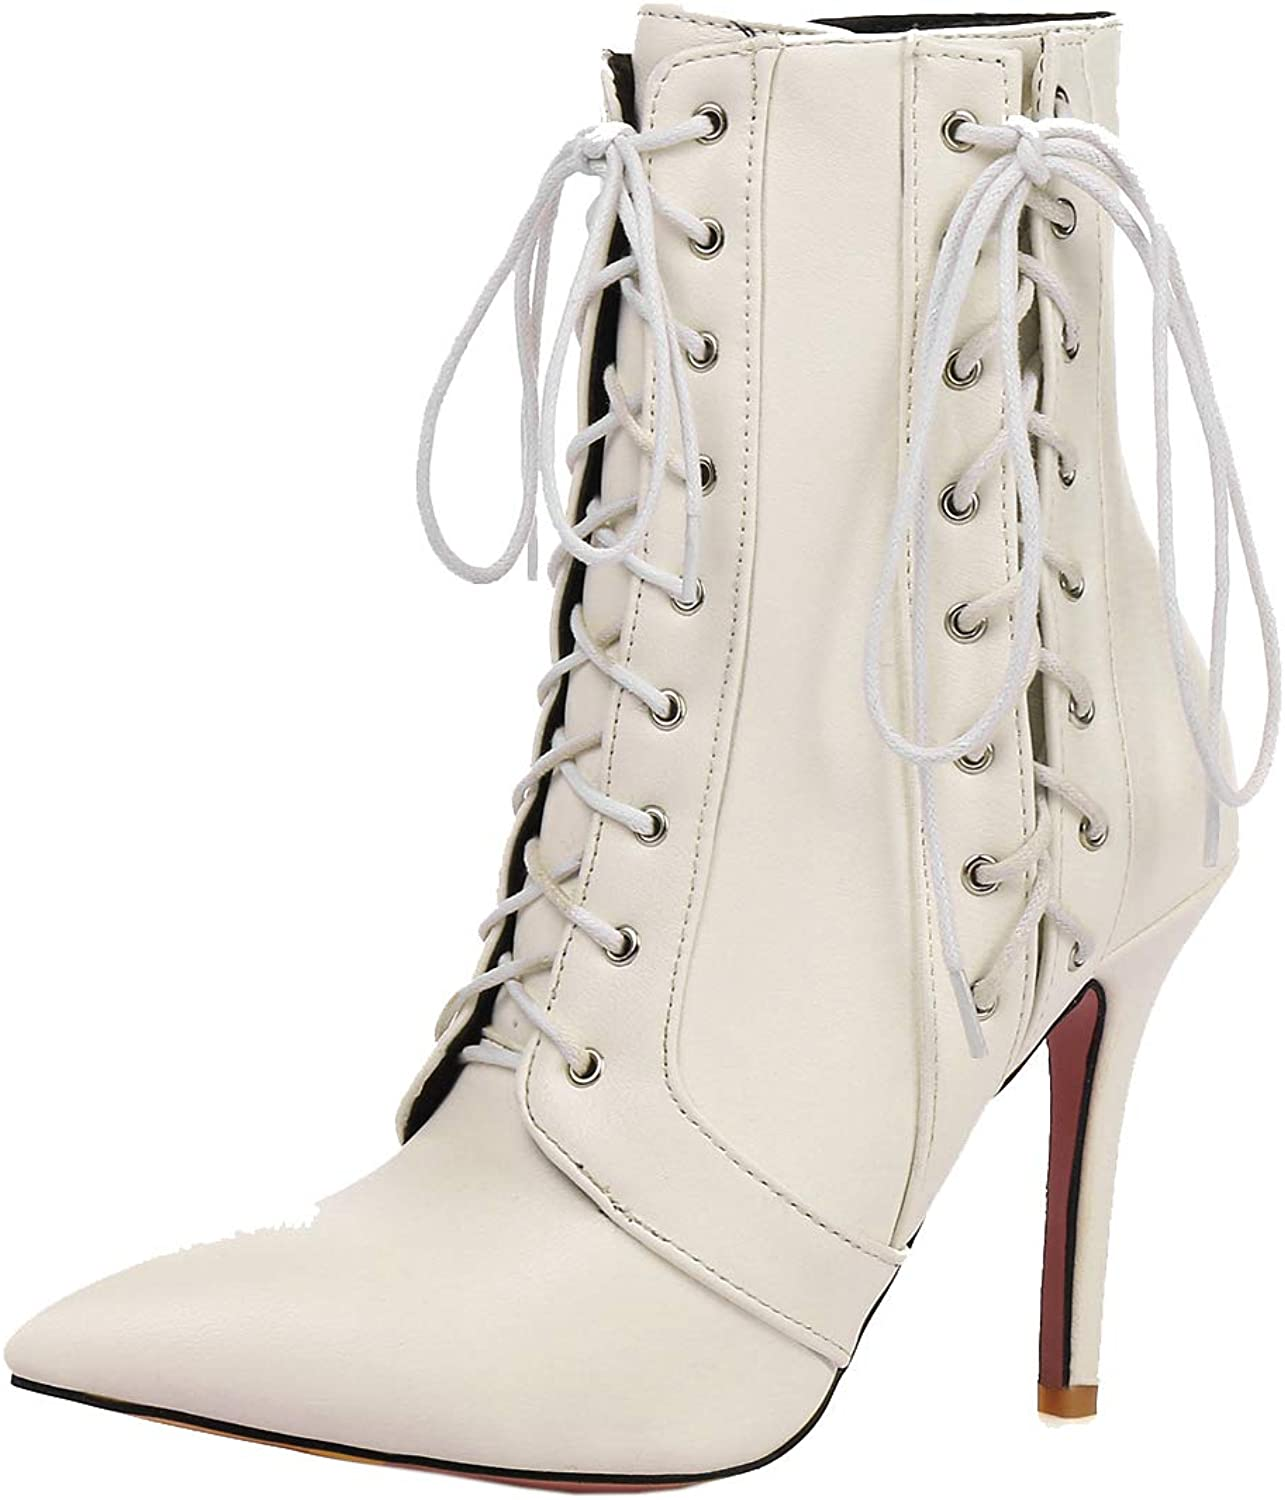 Vitalo Womens Lace Up High Heel Stiletto Pointed Toe Ankle Boots Autumn Winter Booties